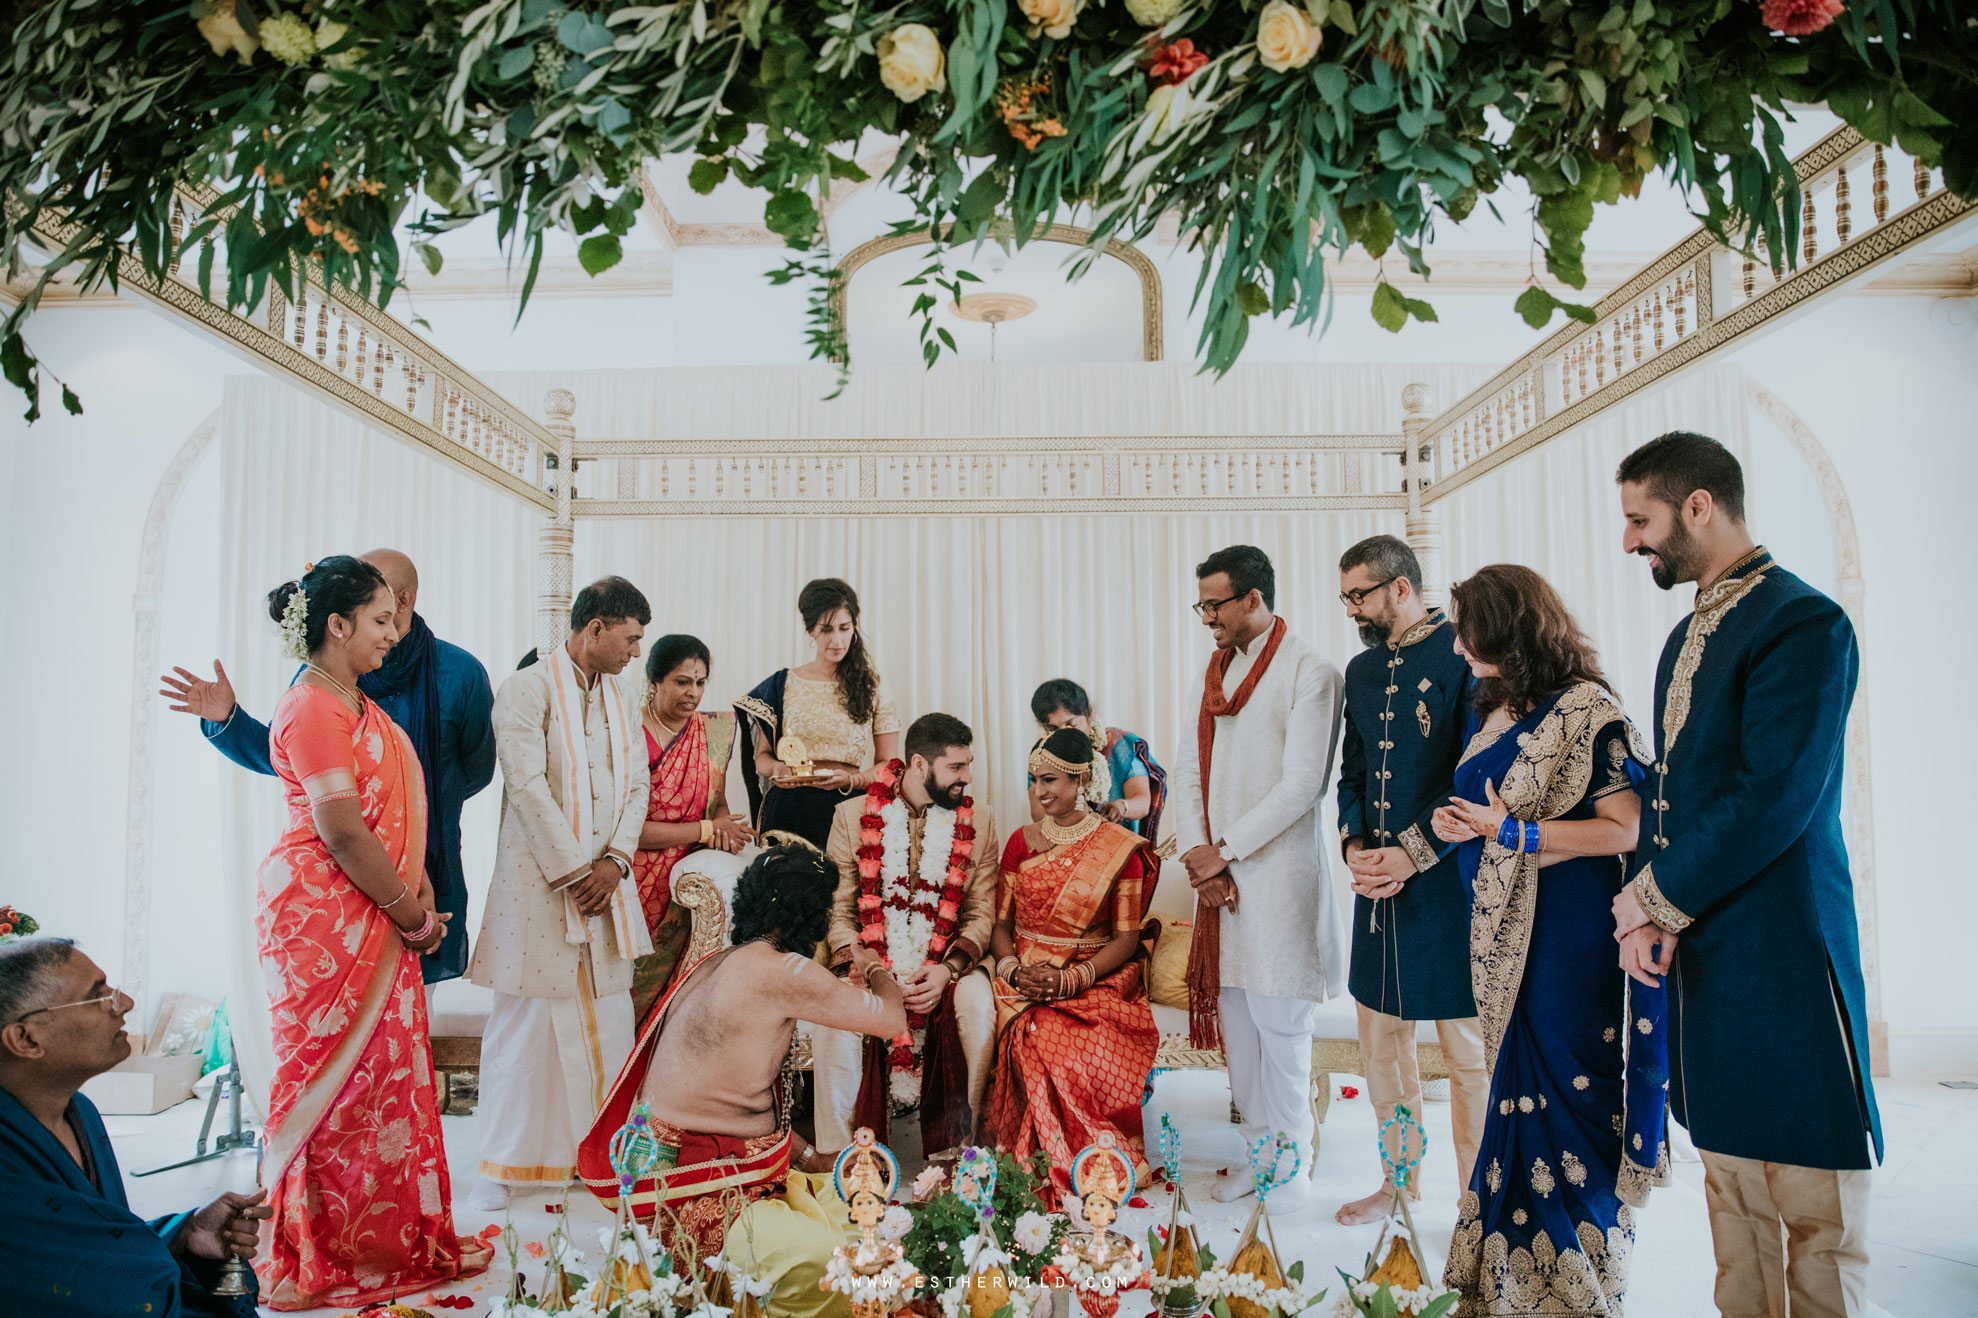 Northbrook_Park_Farnham_Surrey_London_Wedding_Hindu_Fusion_Esther_Wild_Photographer_IMG_4573.jpg